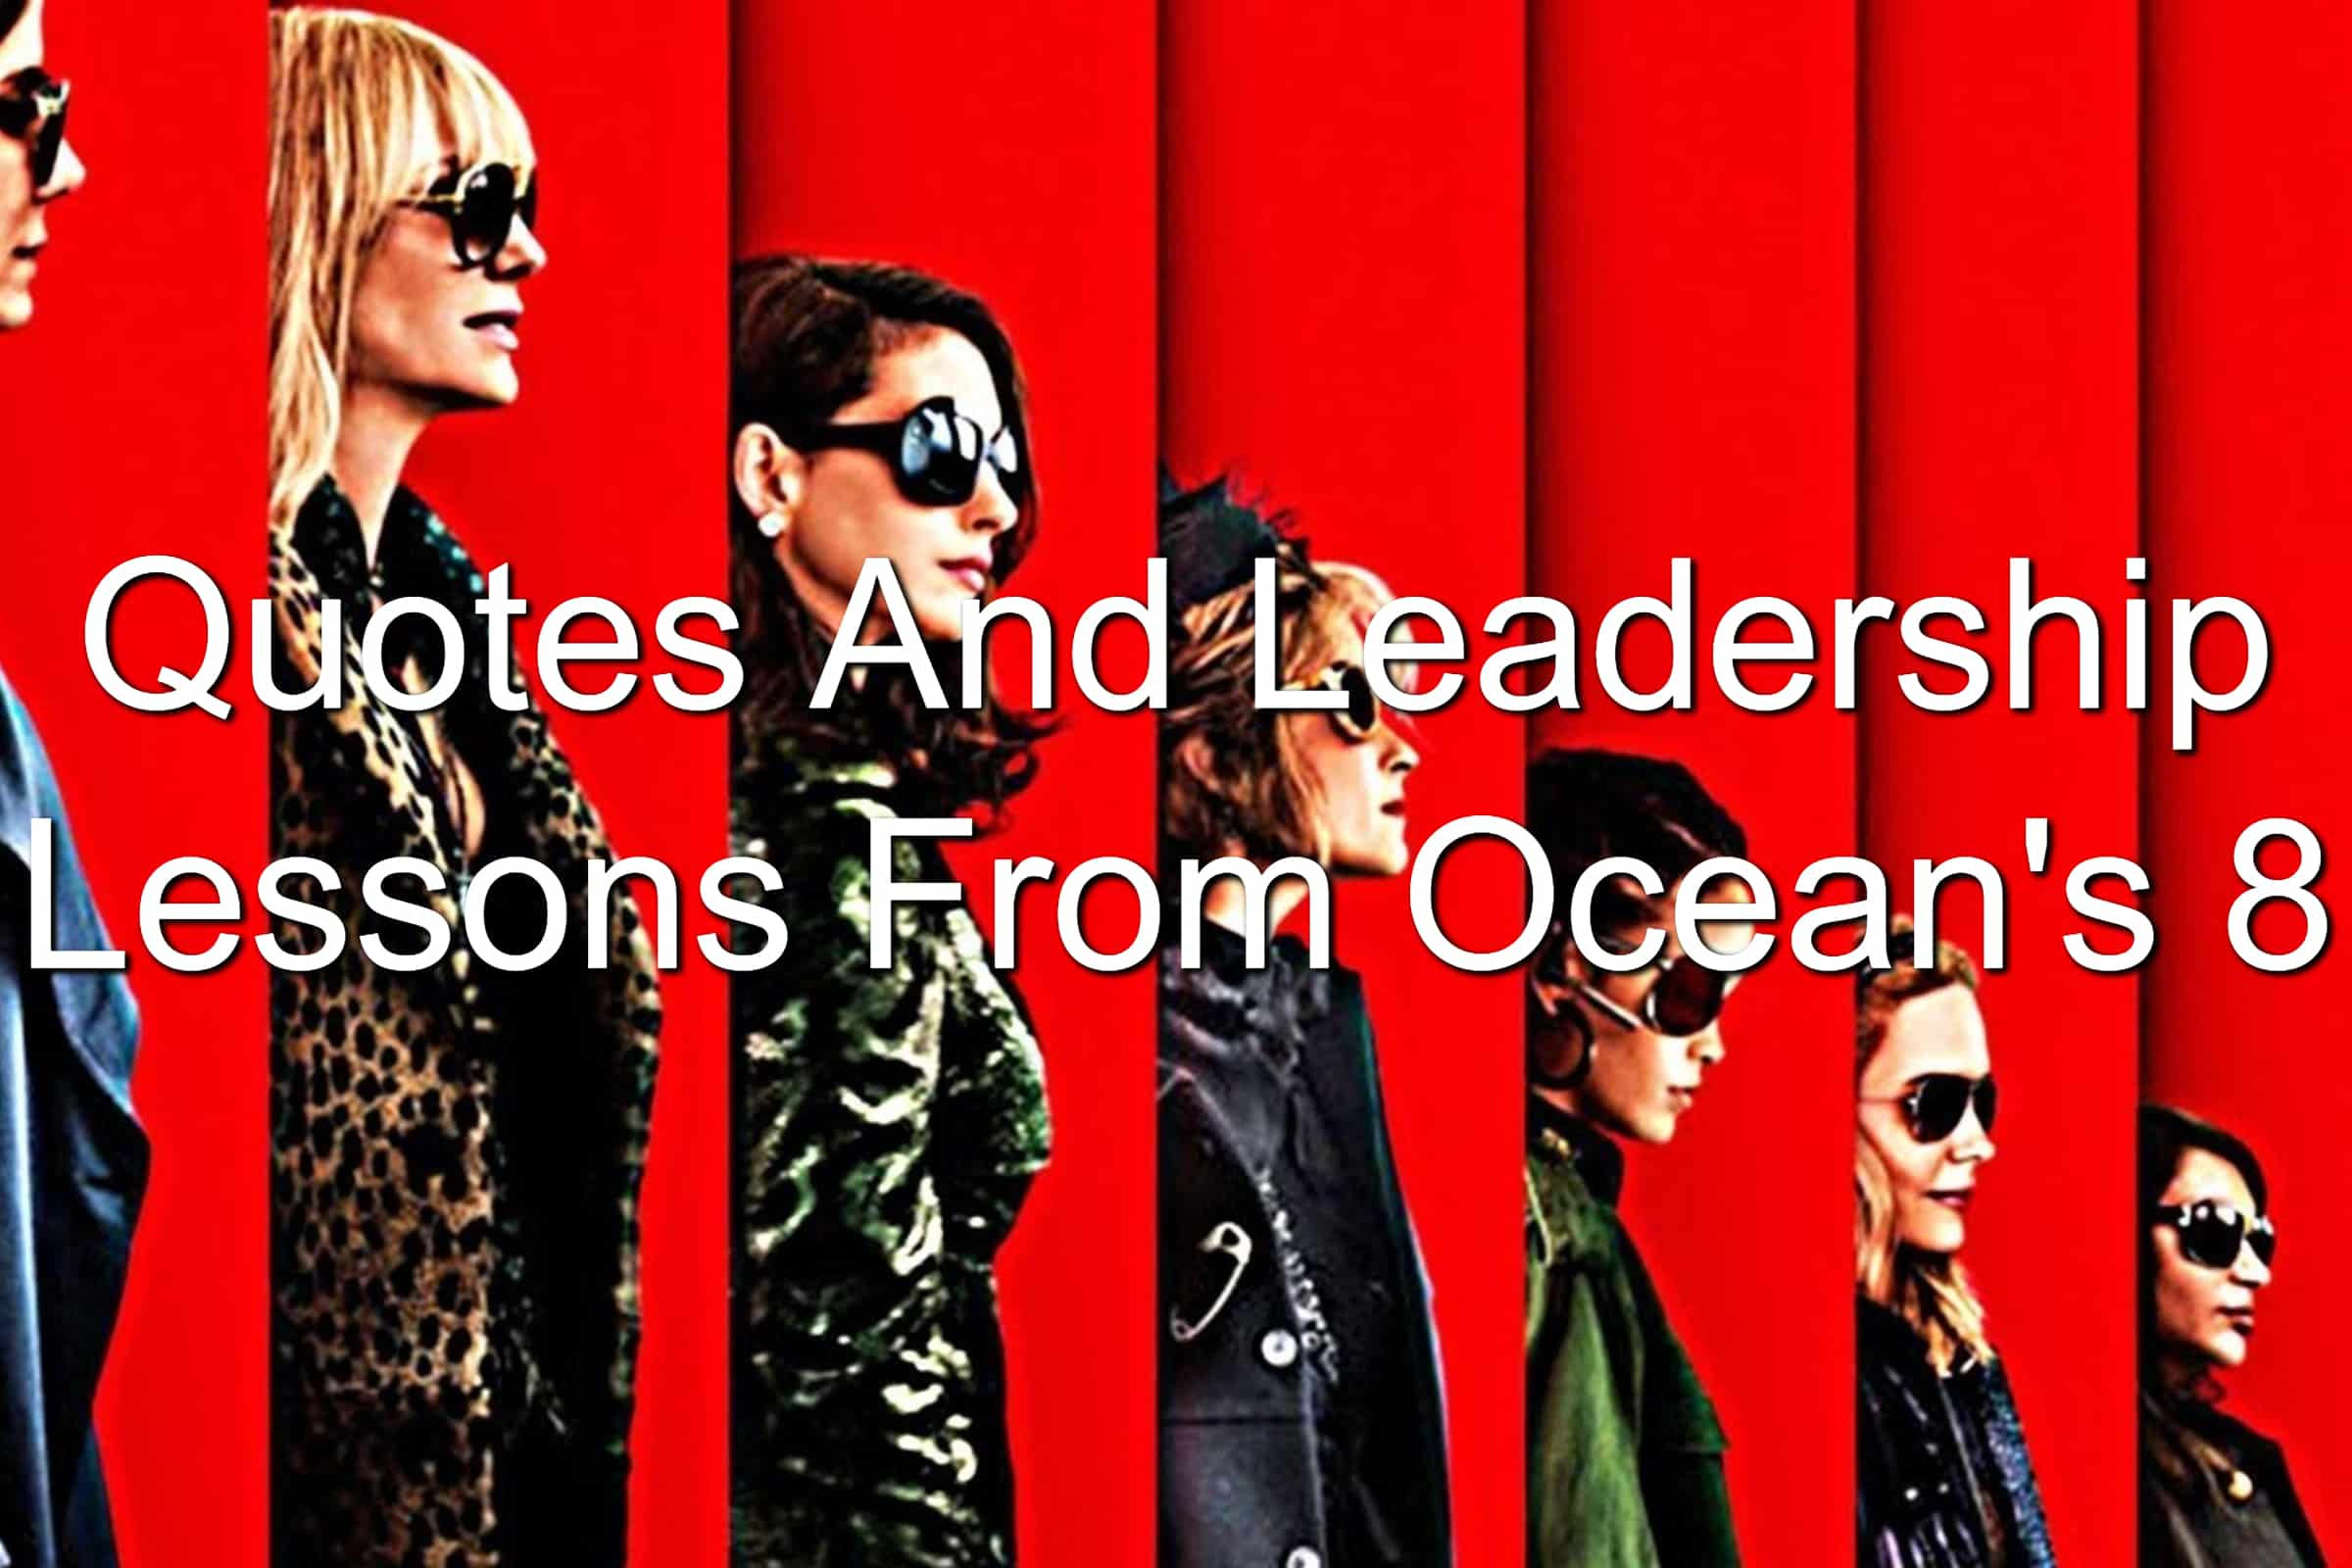 Leadership lessons in Ocean's 8